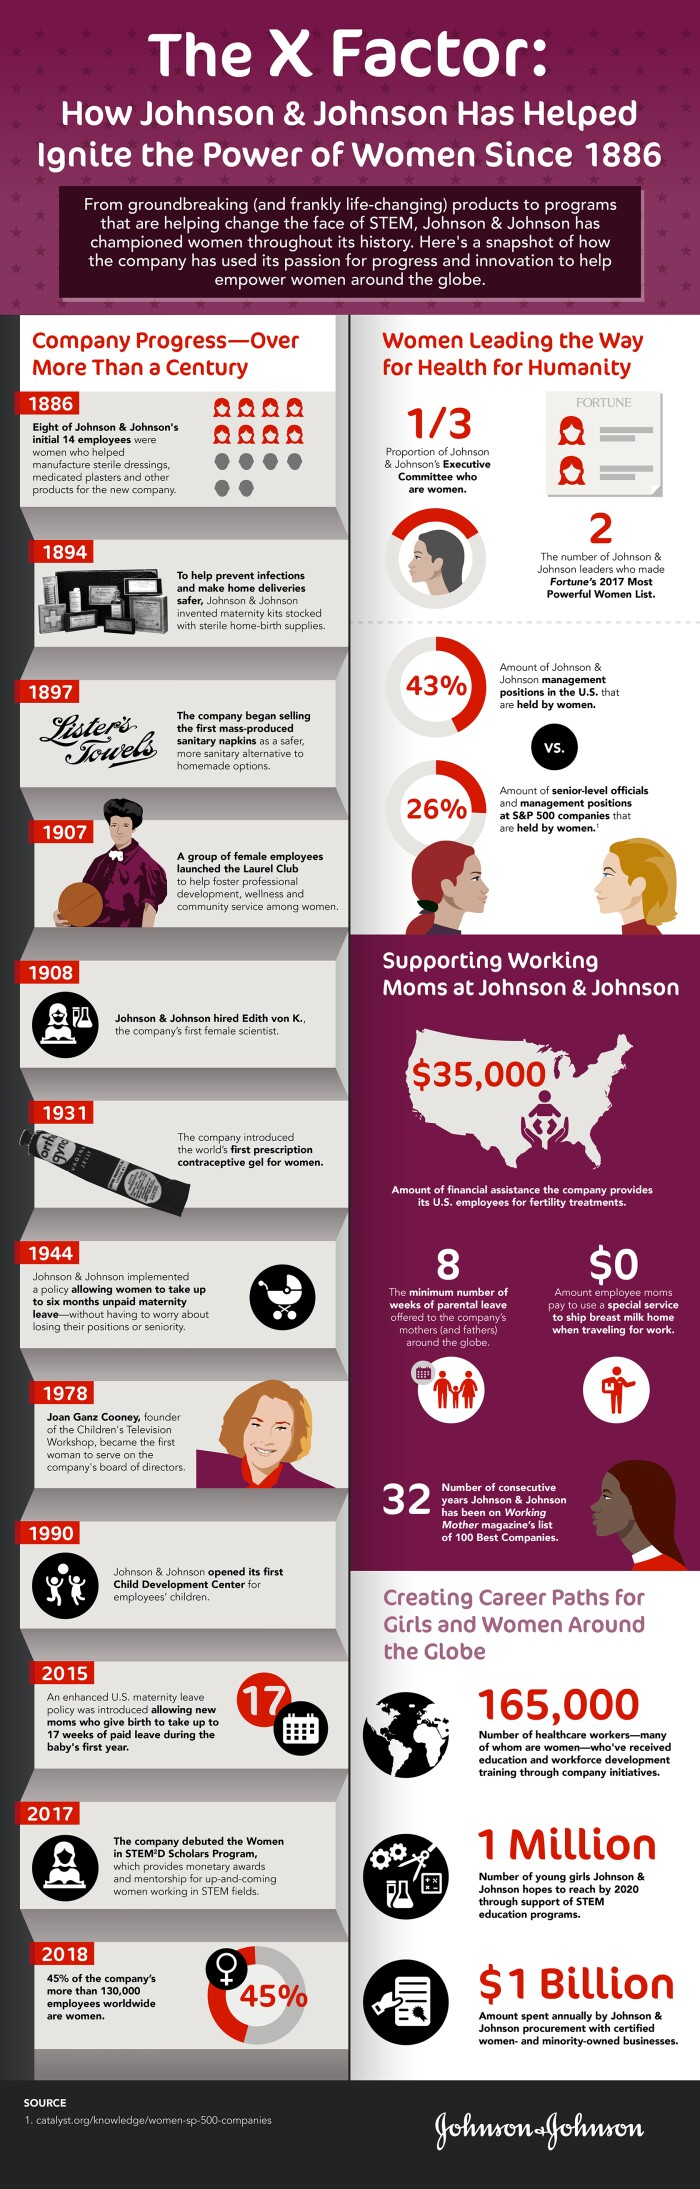 Infographic on How Johnson & Johnson Has Supported Women's Empowerment Since 1886